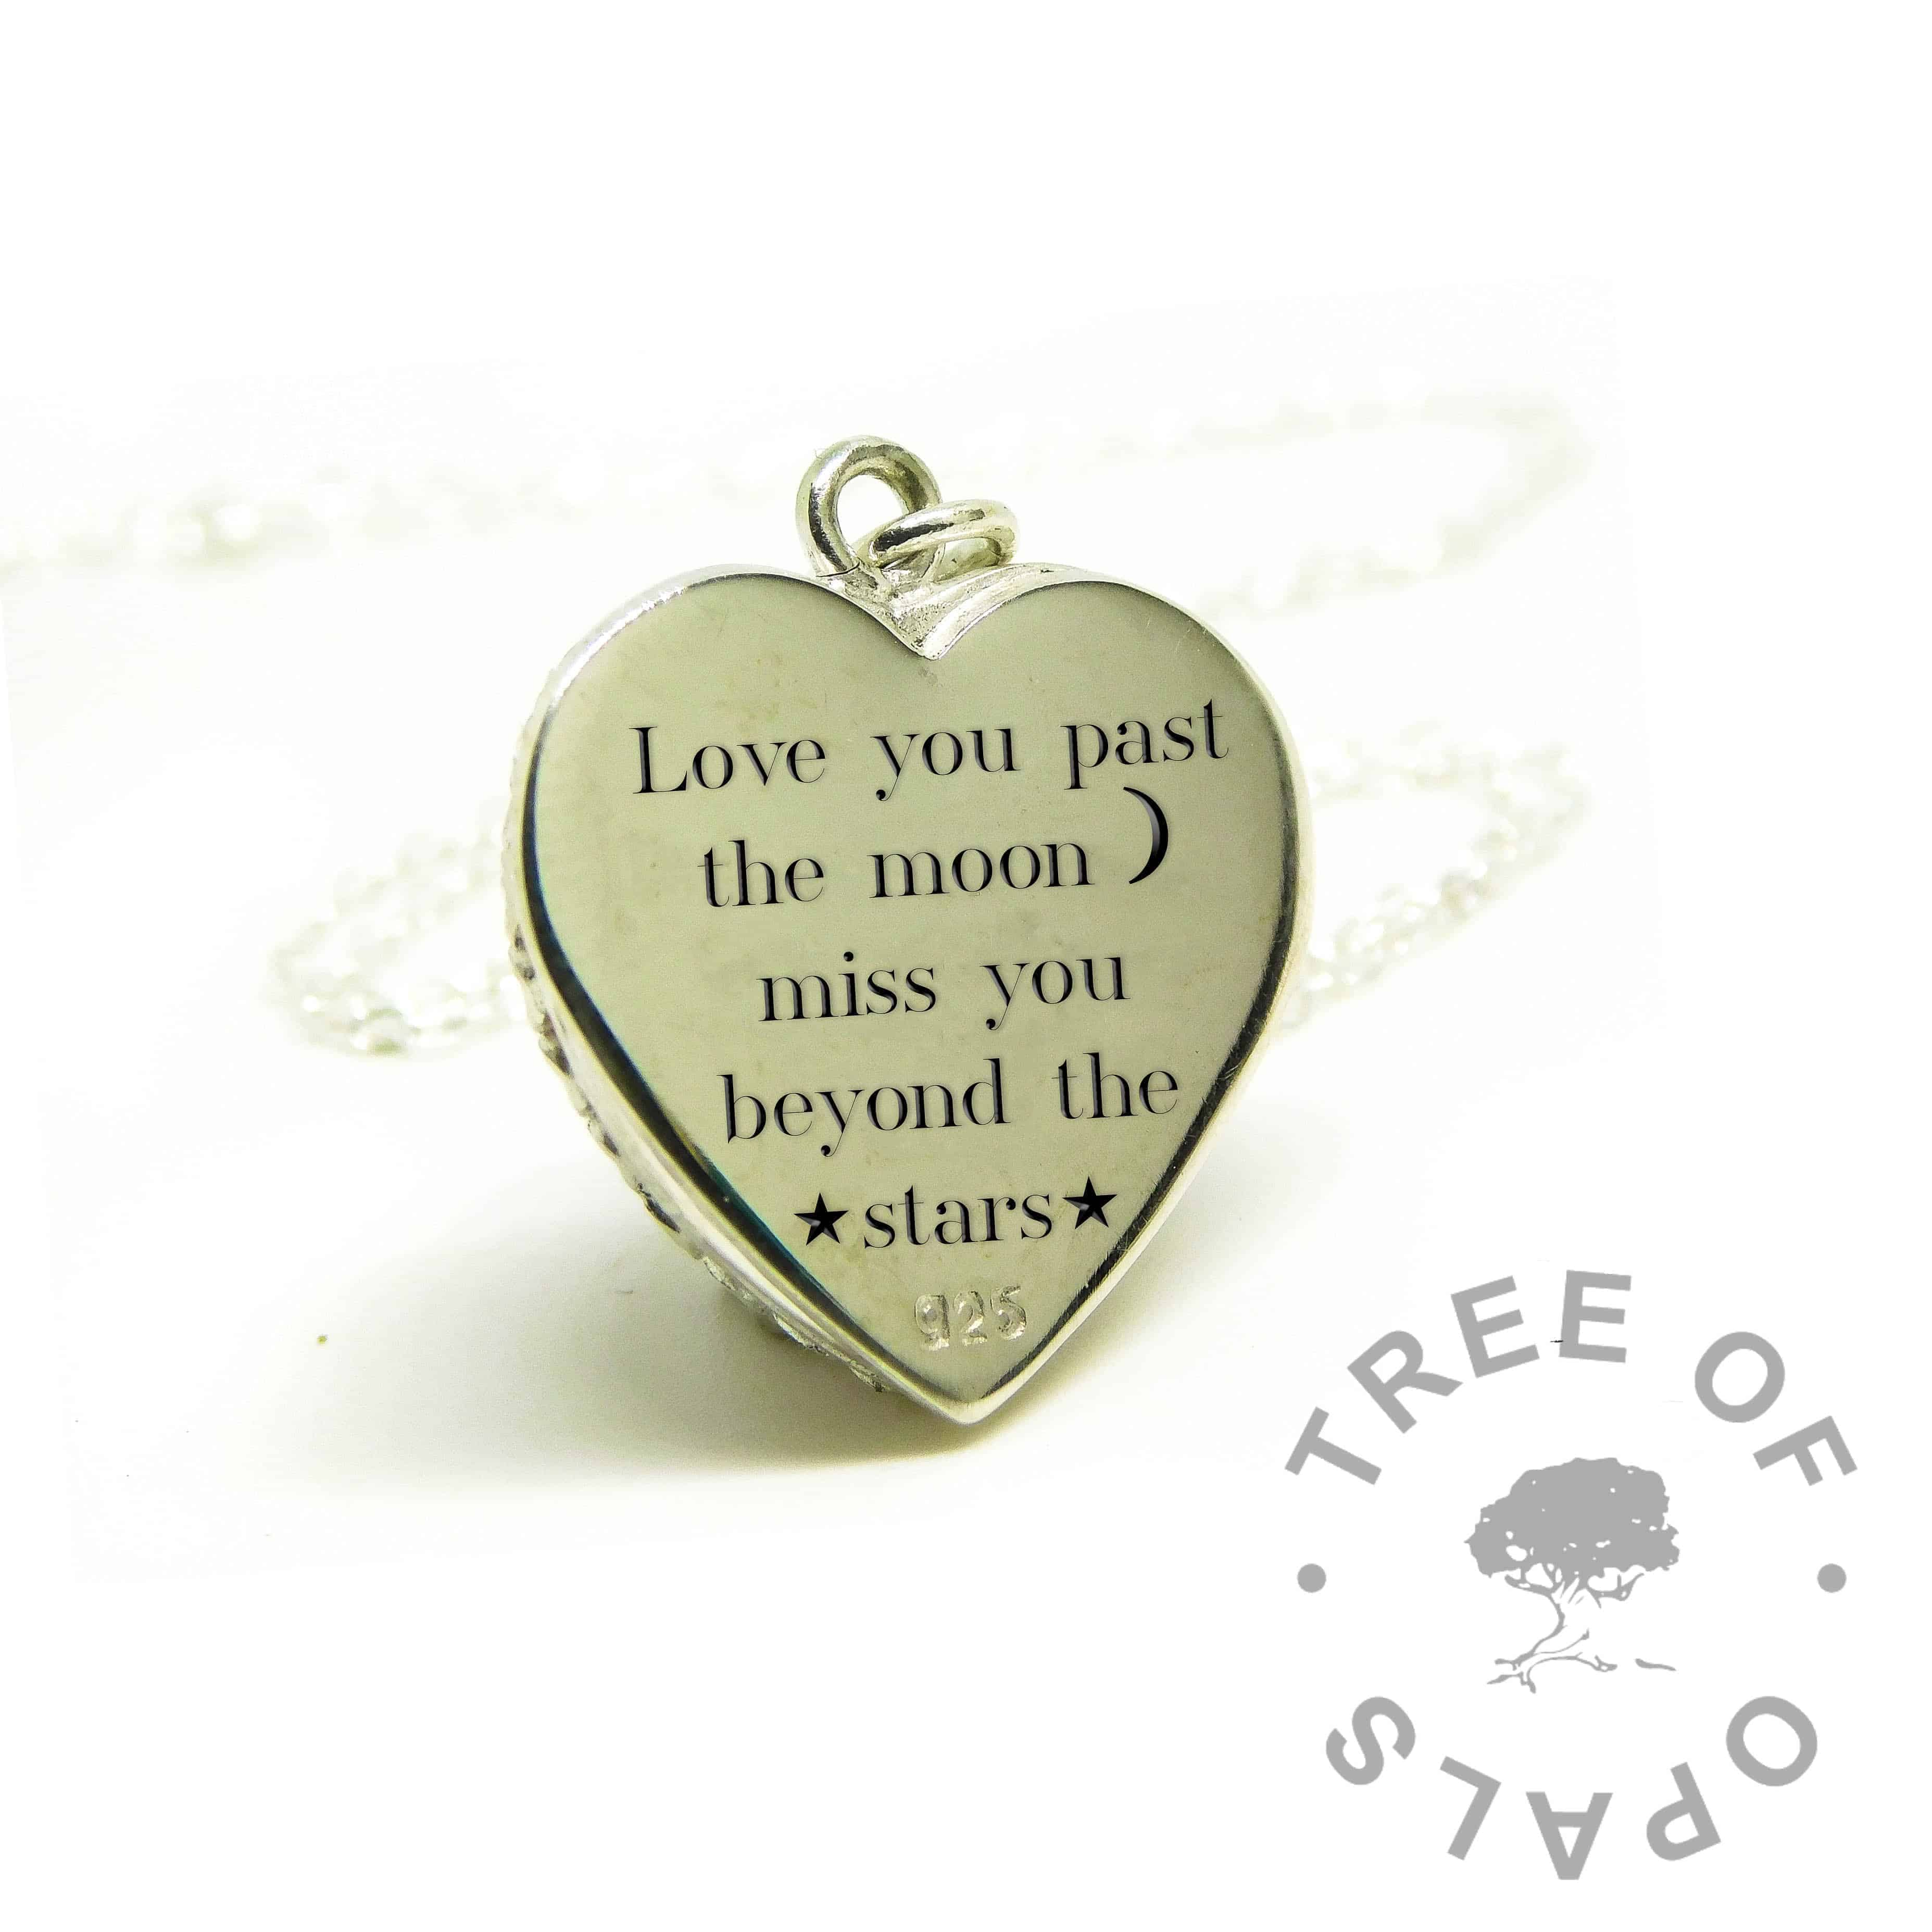 love you past the moon engraved heart necklace, Silver South Serif font